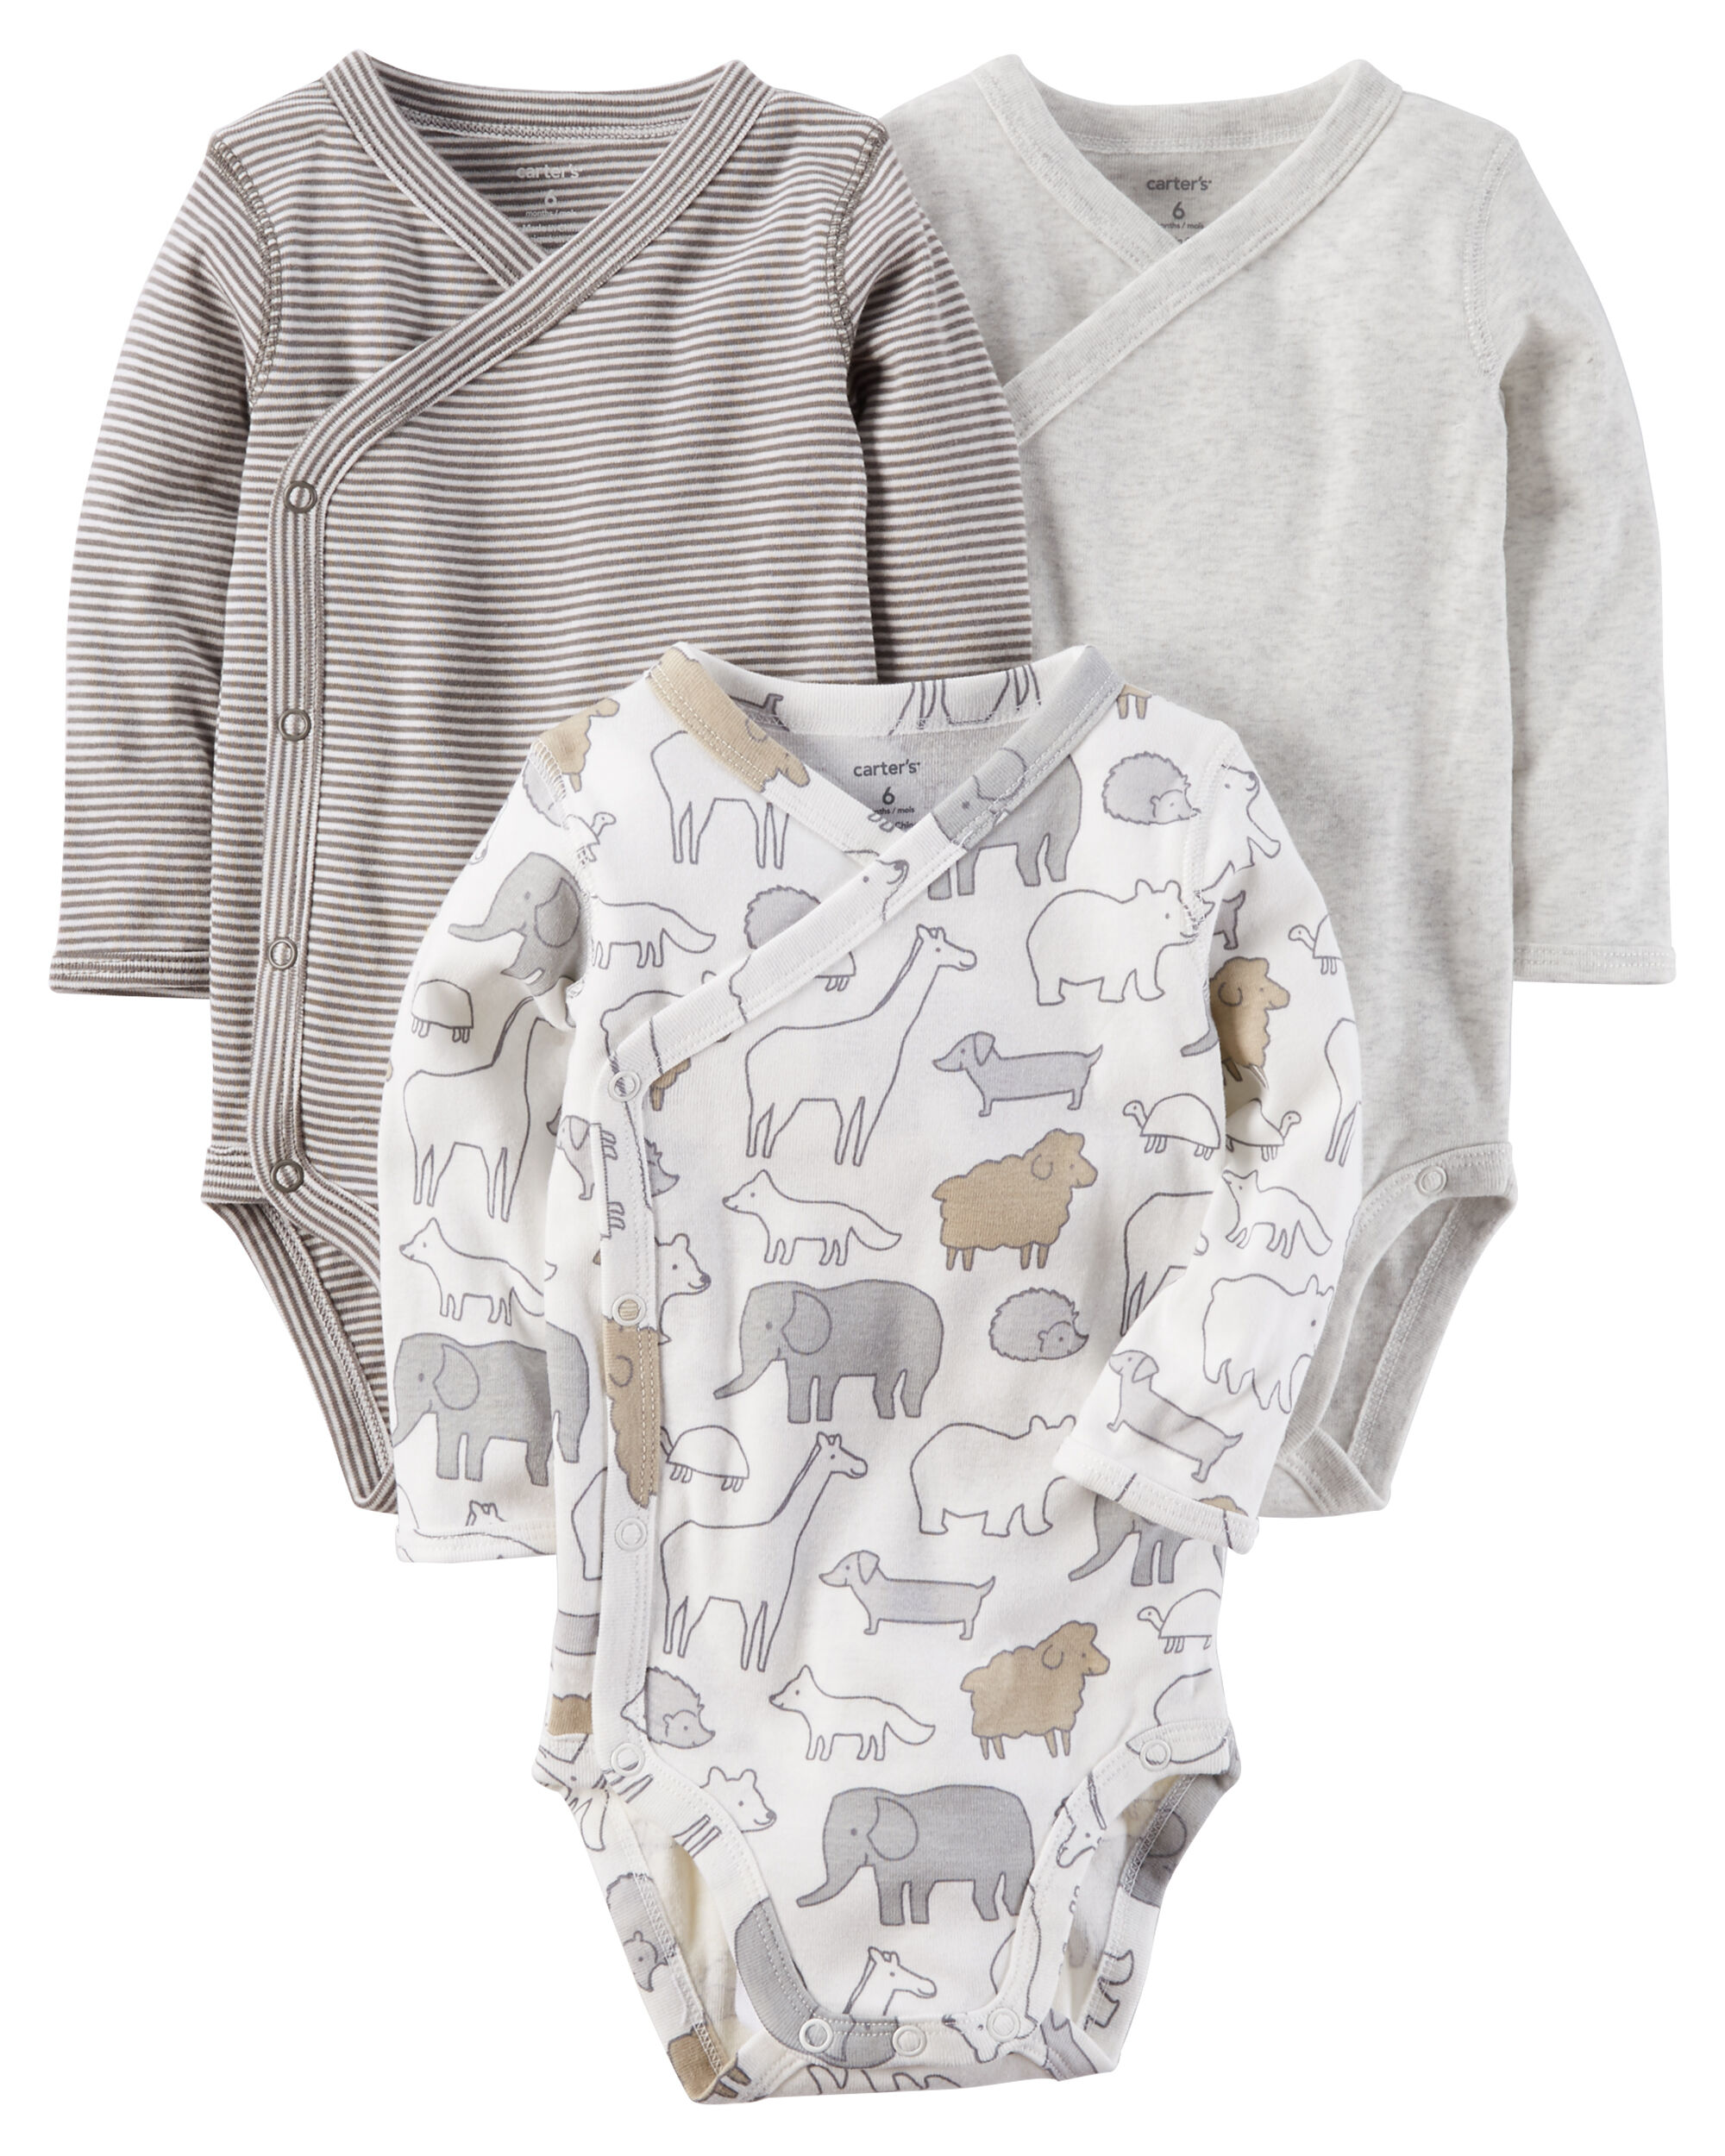 3-Pack Side-Snap Bodysuits | Carters.com